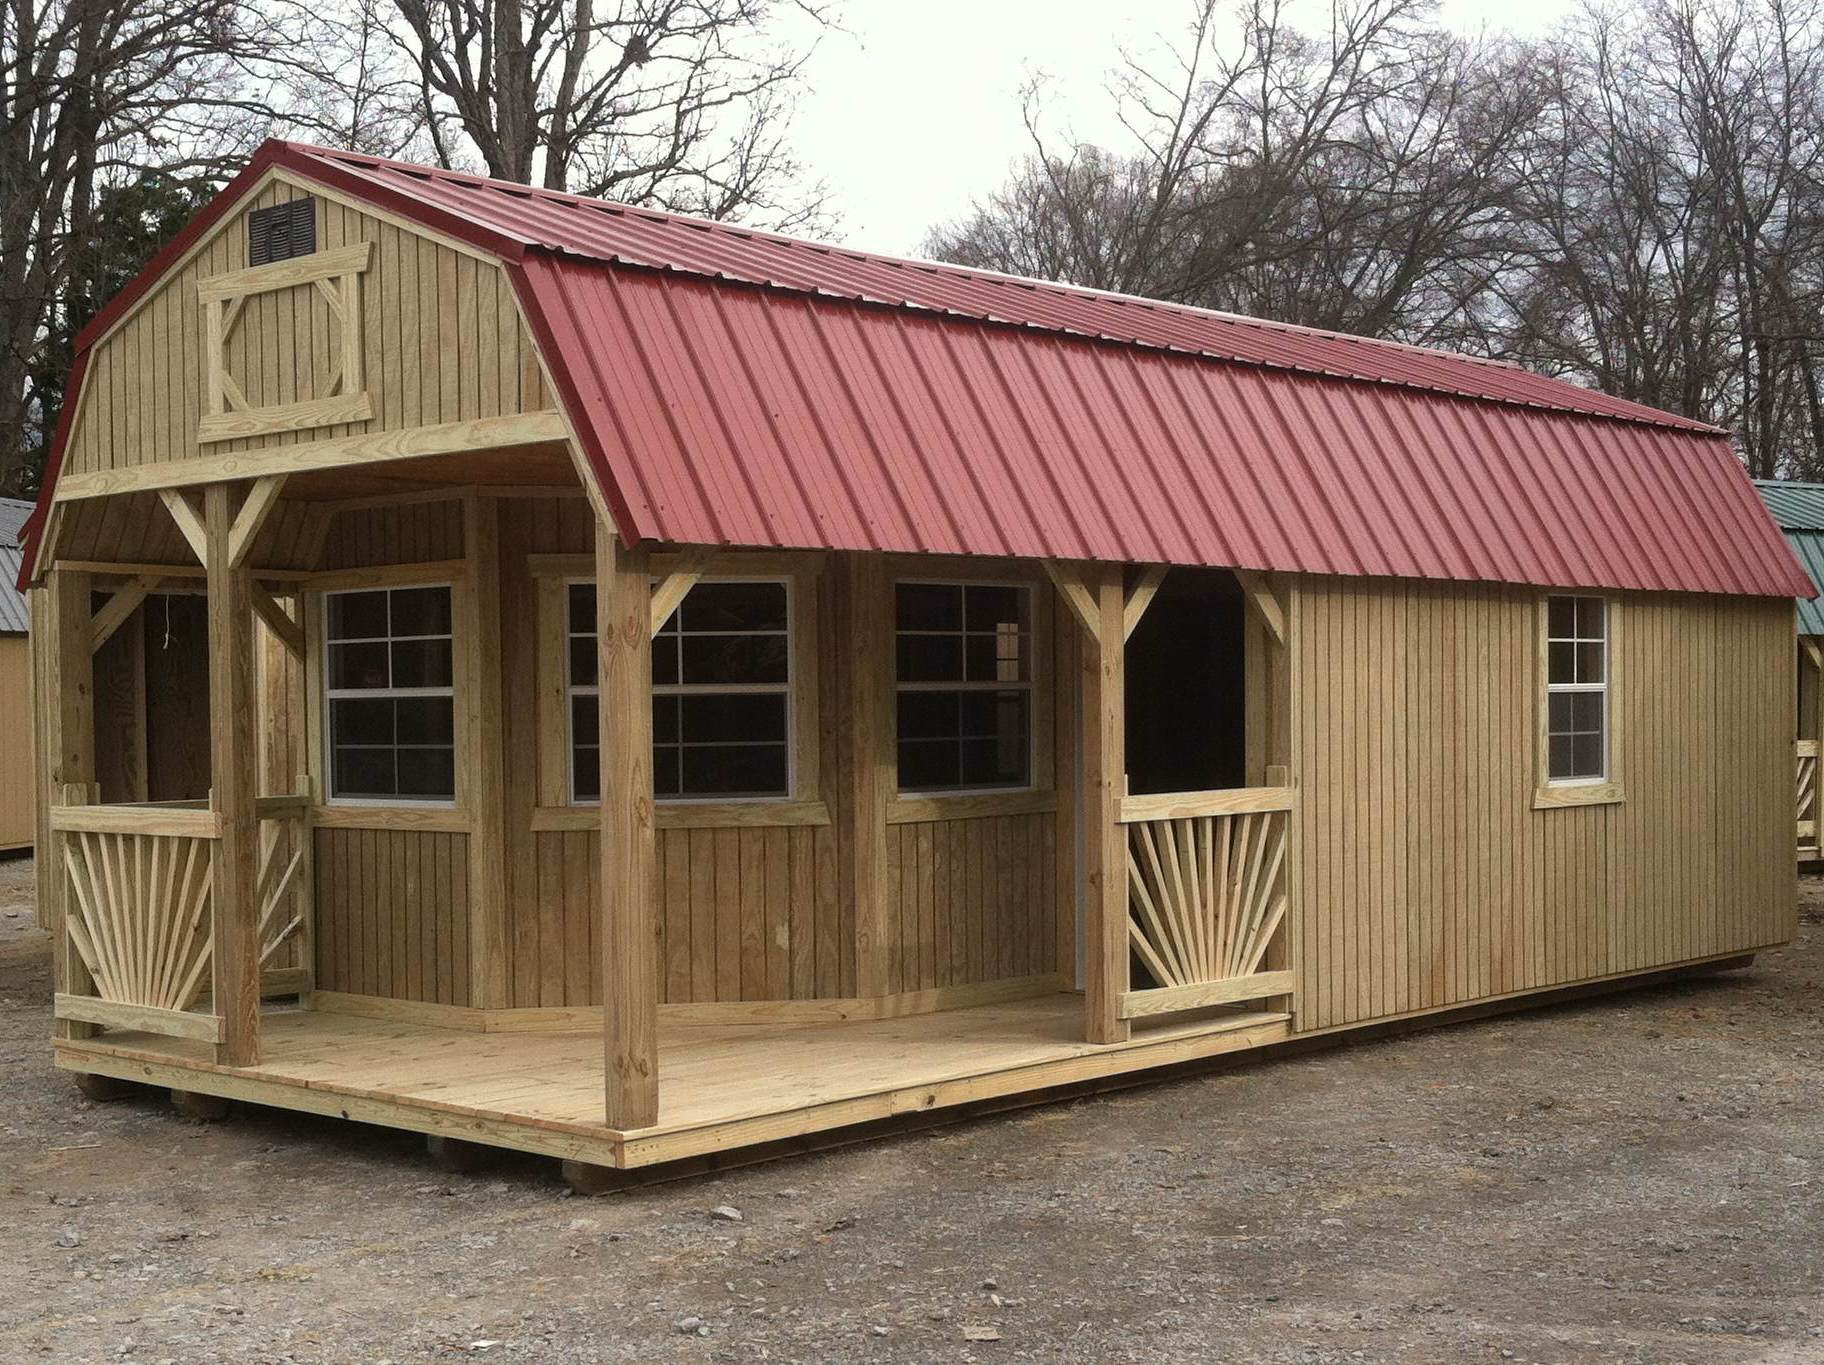 Hickory sheds west cabins cabins n small homes for Small sheds for sale